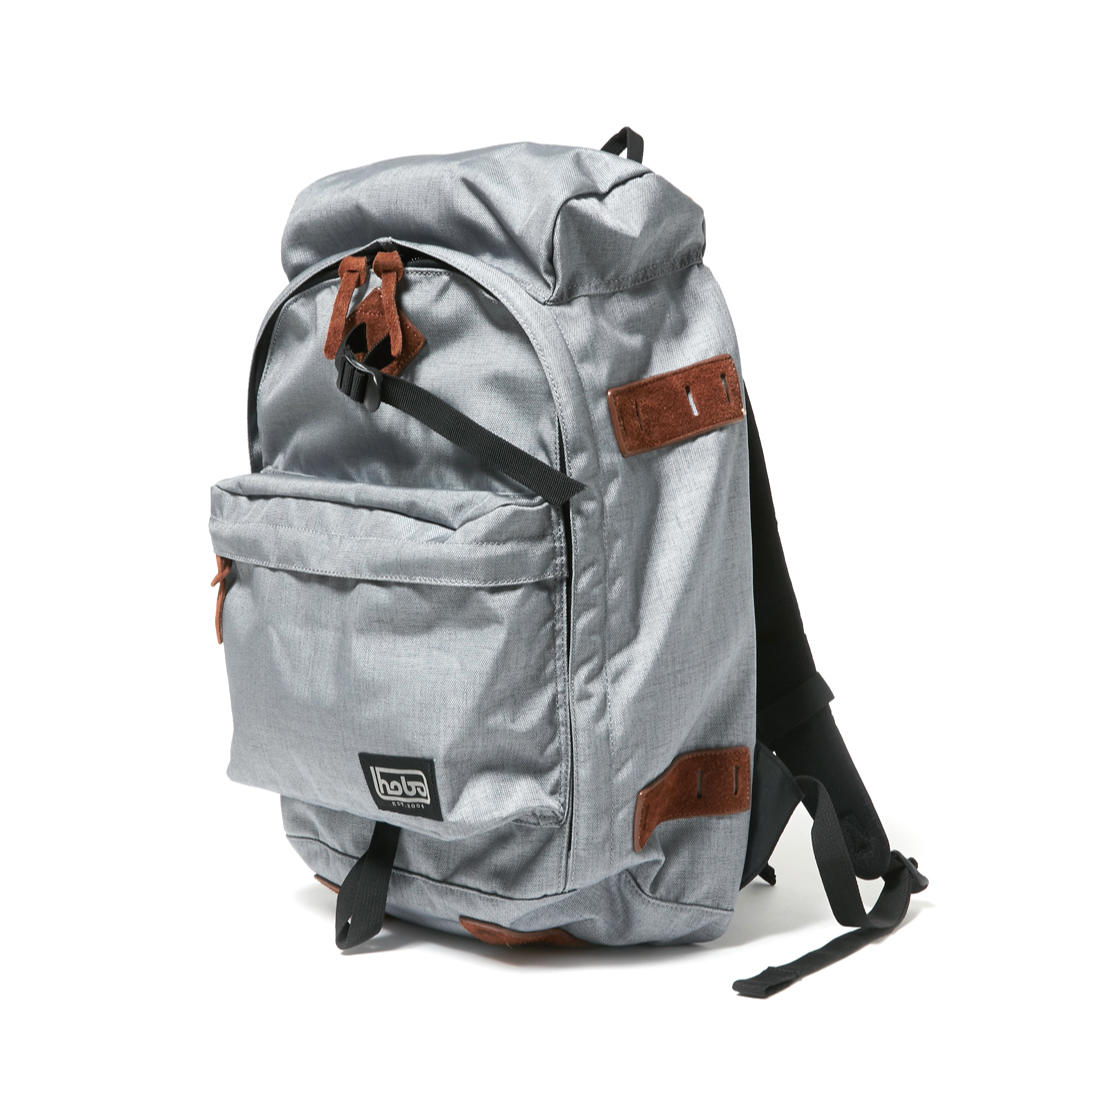 "HOBO / CELSPUN NYLON BACKPACK 31L ""SIRDAR"" -gray"